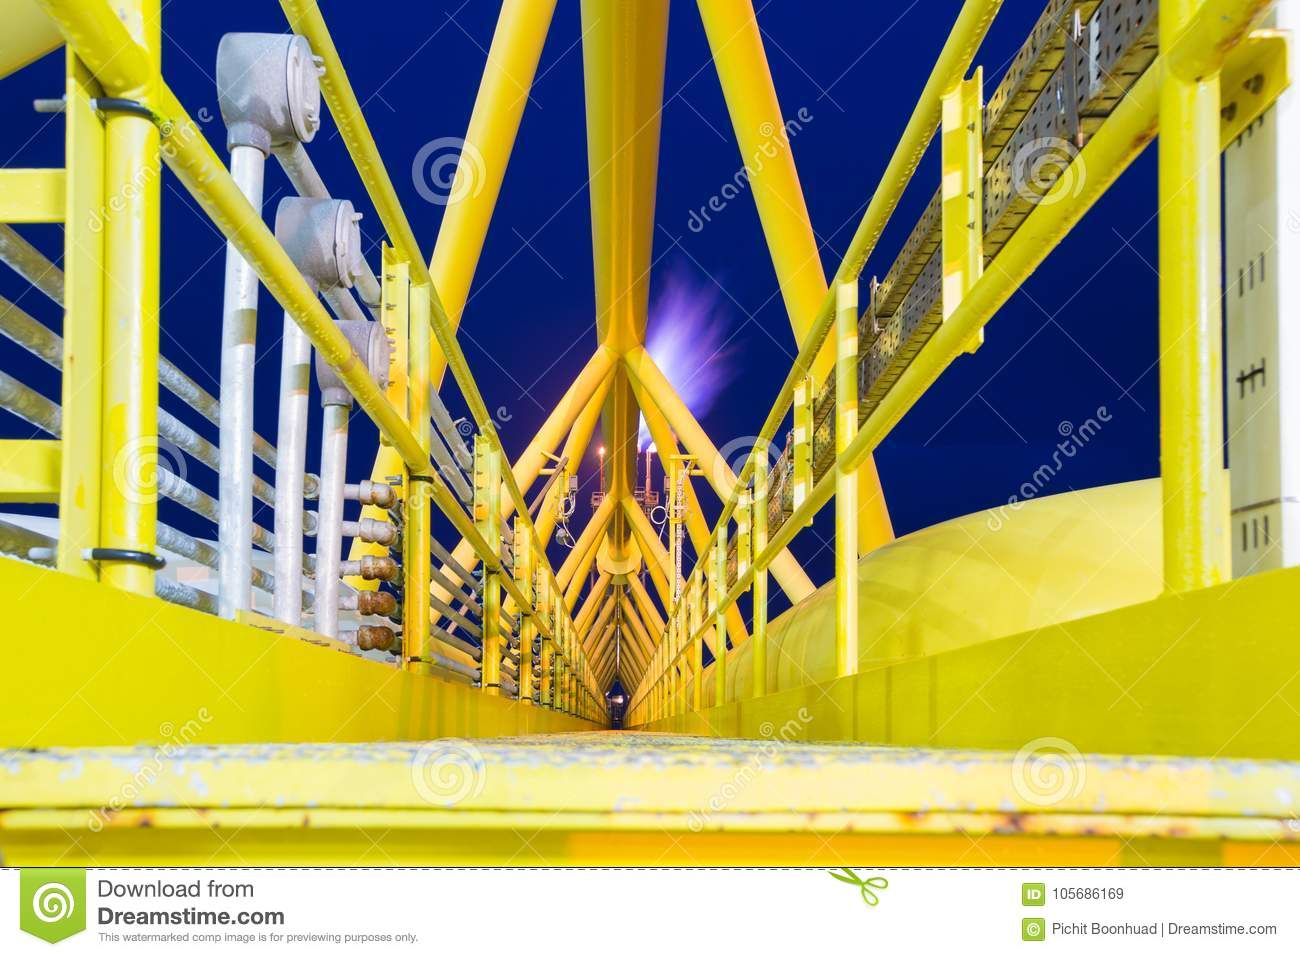 Offshore Oil and gas central processing platform and flare bridge while vent and burn waste gases from process